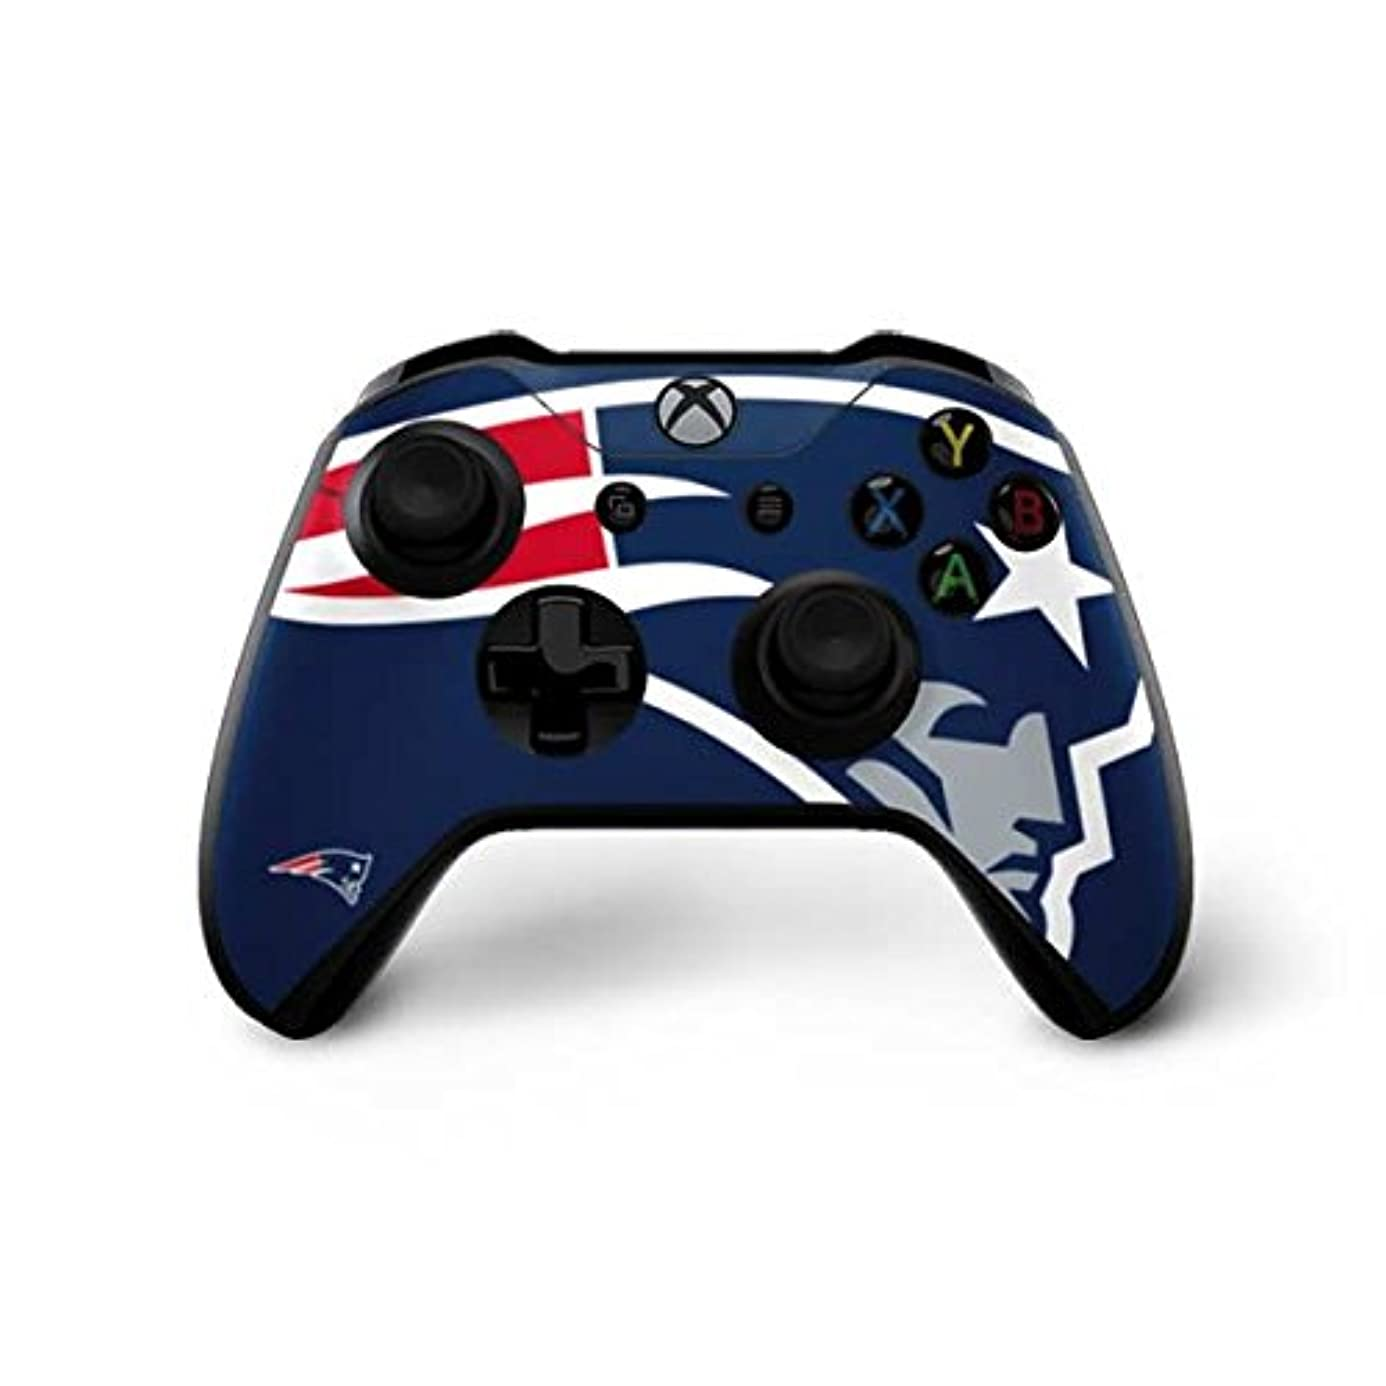 Skinit New England Patriots Large Logo Xbox One X Controller Skin - Officially Licensed NFL Gaming Decal - Ultra Thin, Lightweight Vinyl Decal Protection